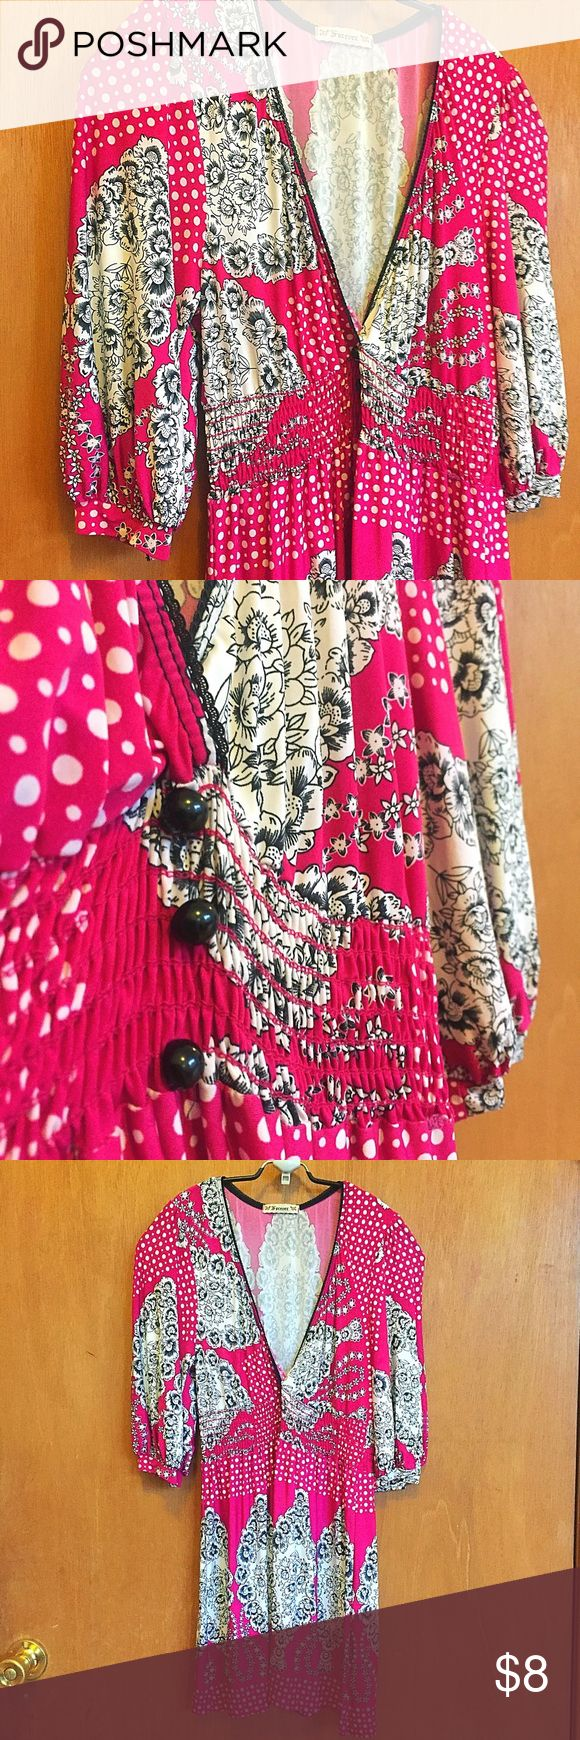 Hot pink biz casual blouse with B&W baroque print Liven up your wardrobe with this bright blouse. Super comfortable and fresh, easy to care for and stylish. Pair it with slacks for a splash of color during your workday or with a short skirt or shorts during the weekend. Enhances curves without being too revealing. Can be worn as a mini dress if you're shorter that 5'3. Forever 21 Tops Blouses